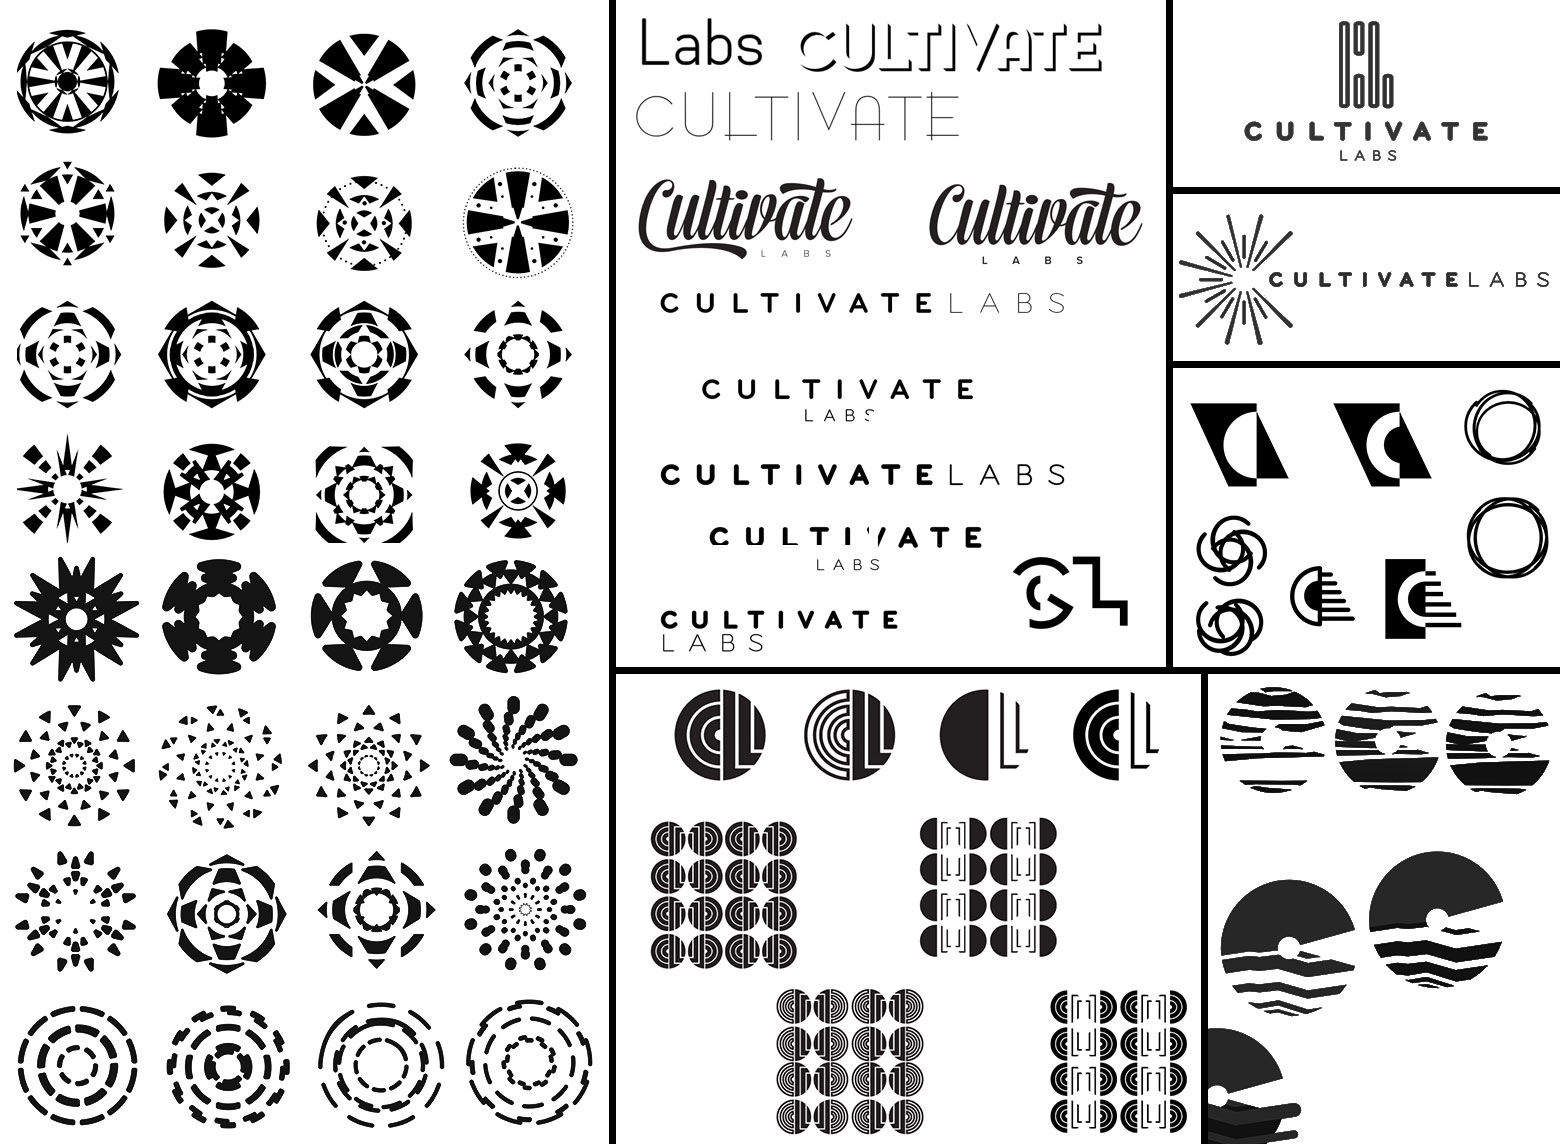 Logo is a four letter word: Branding Cultivate Labs